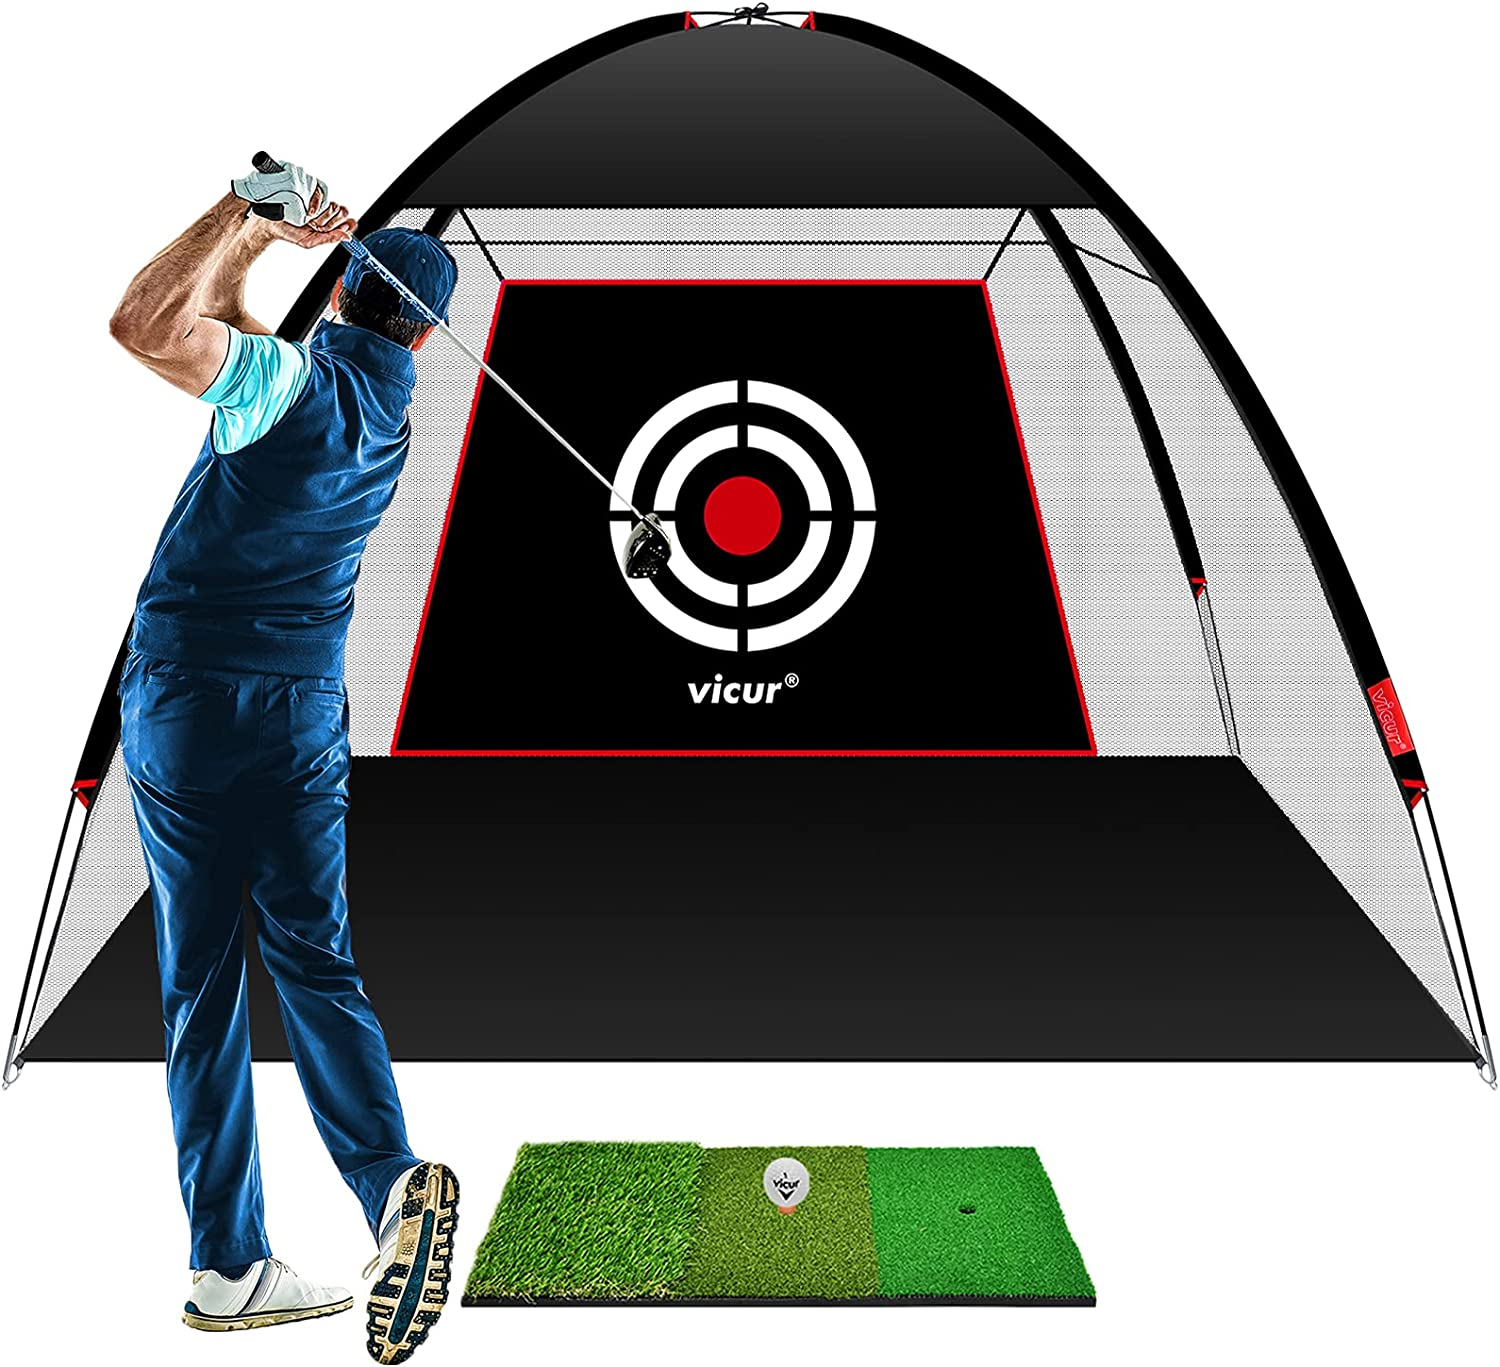 VICUR Golf Nets Golf Practice Net Golf Hitting Net 10x7 feet with Golf Hitting Mat & Golf Balls Packed in Carry Bag for Backyard Driving Indoor Outdoor : Sports & Outdoors